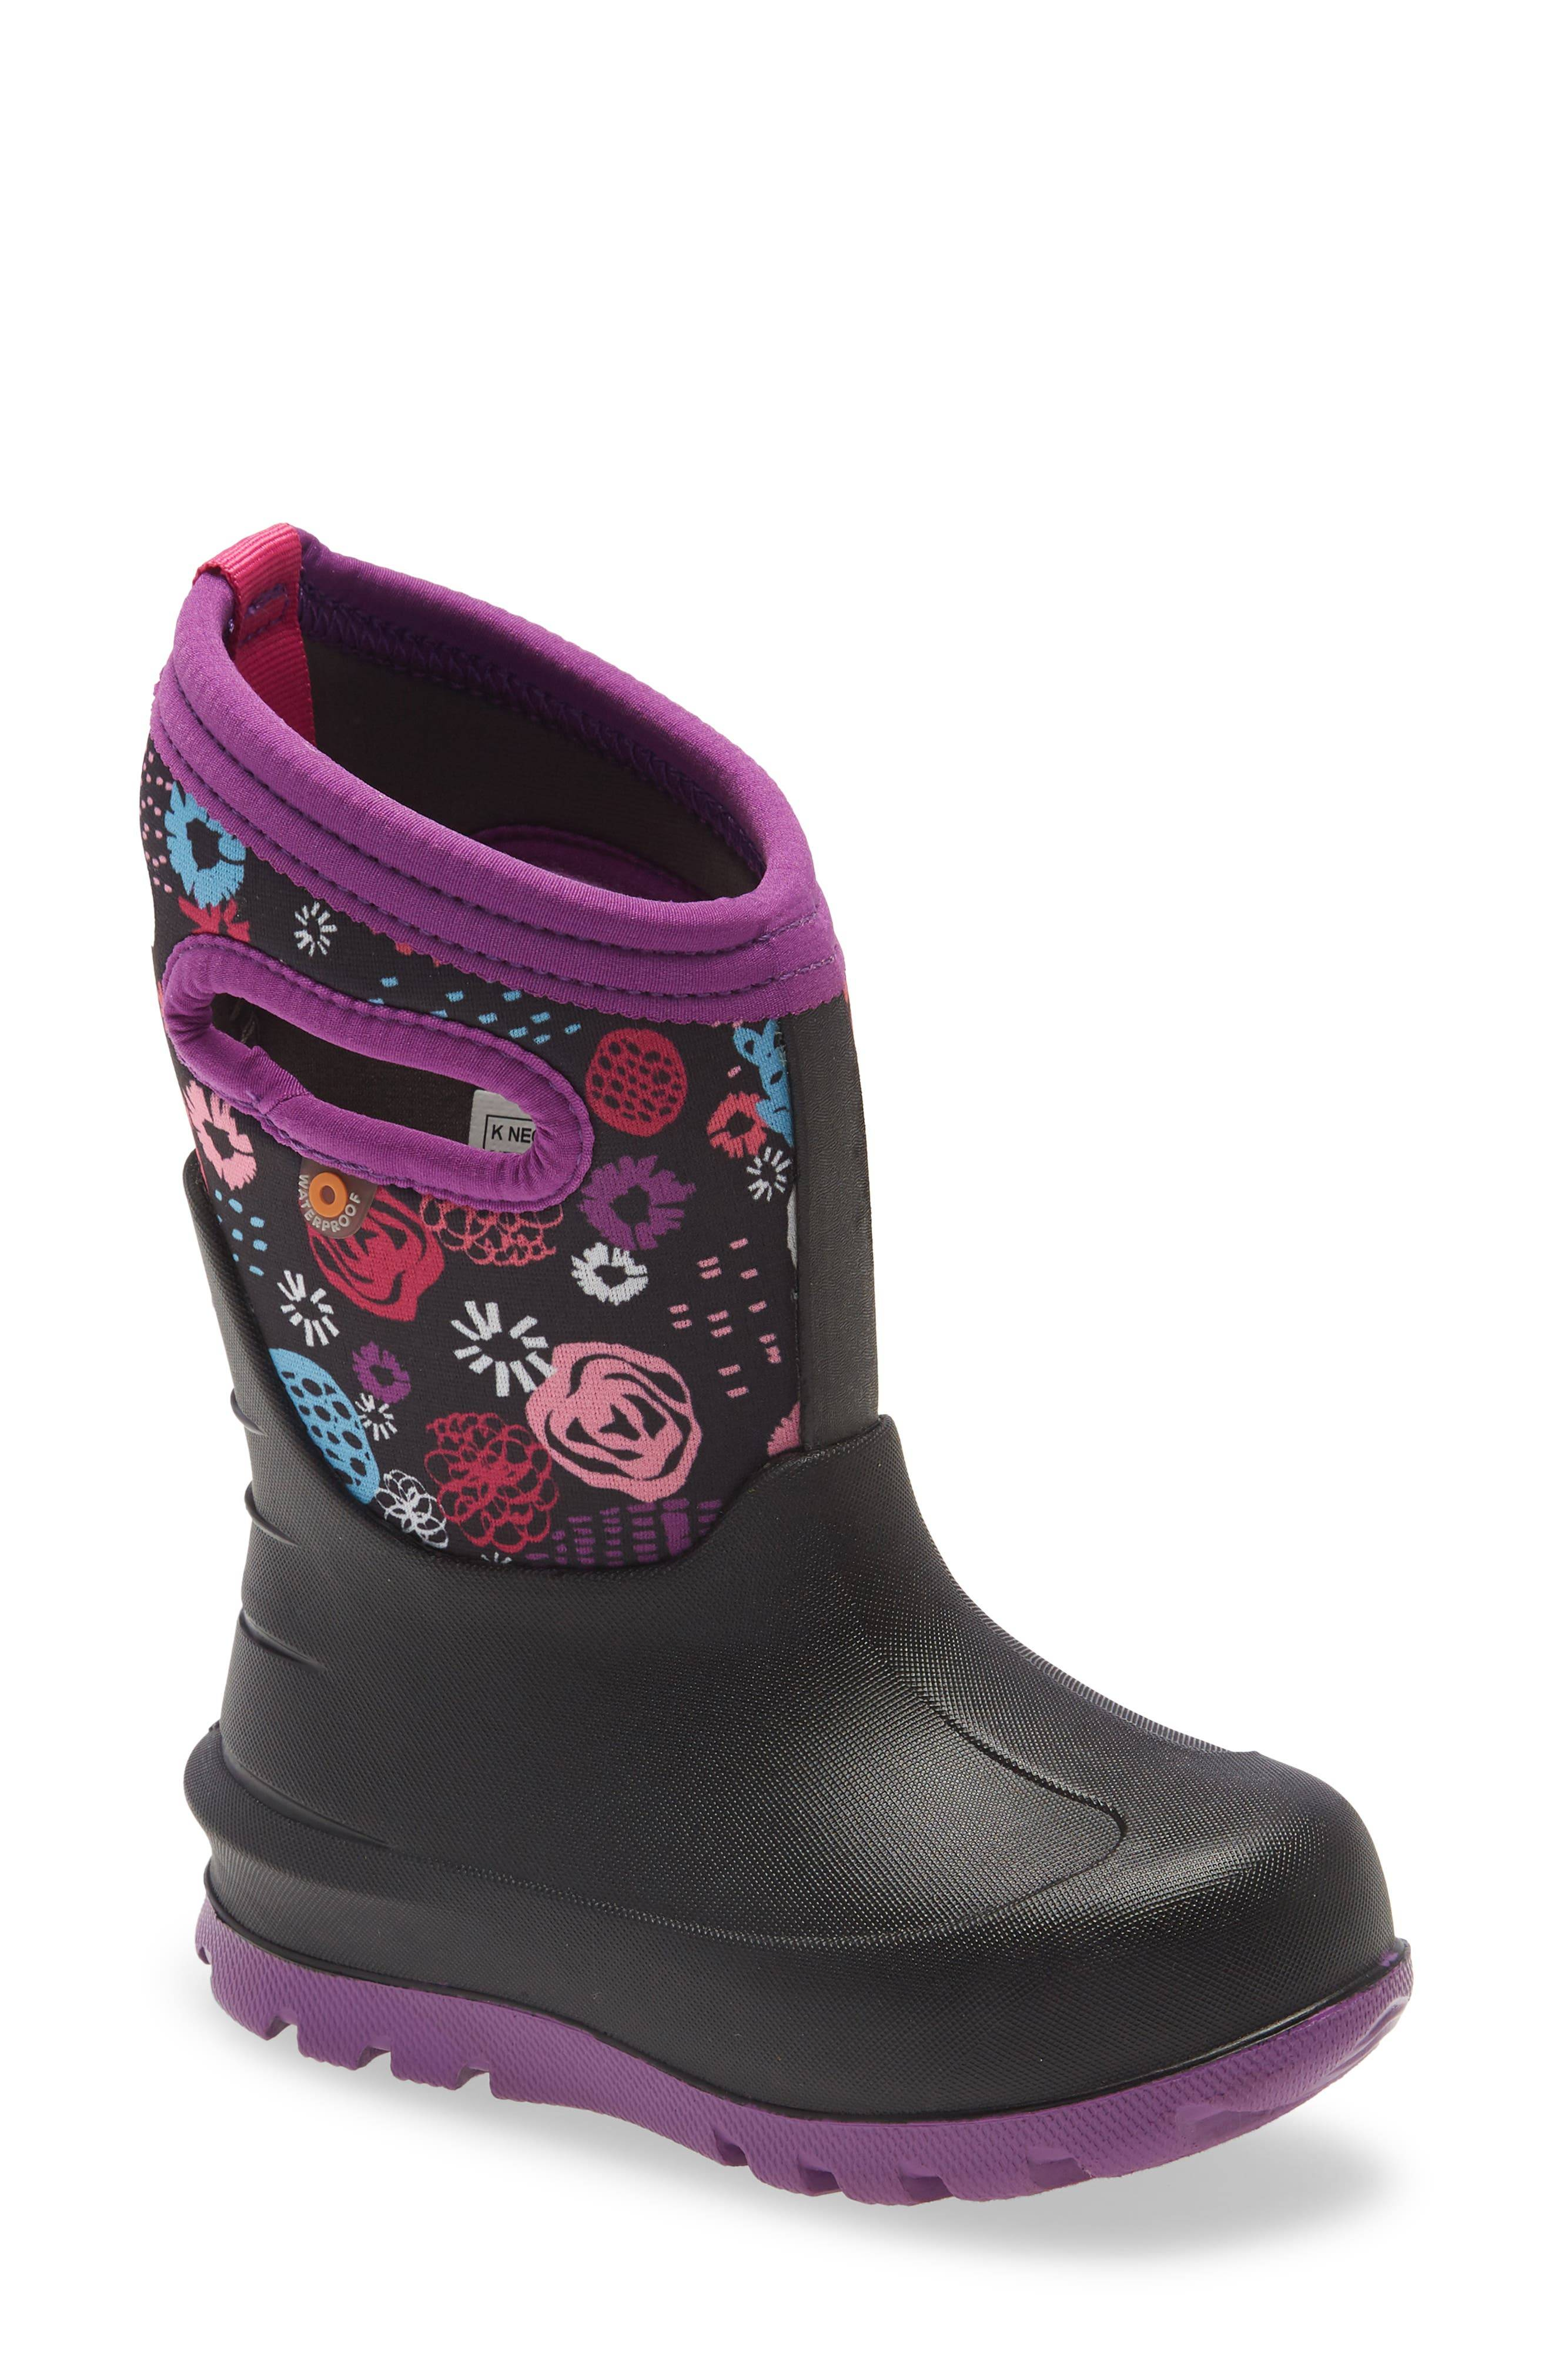 Bogs Girl's Bogs Neo Classic Garden Party Insulated Waterproof Boot, Size 6 M - Black